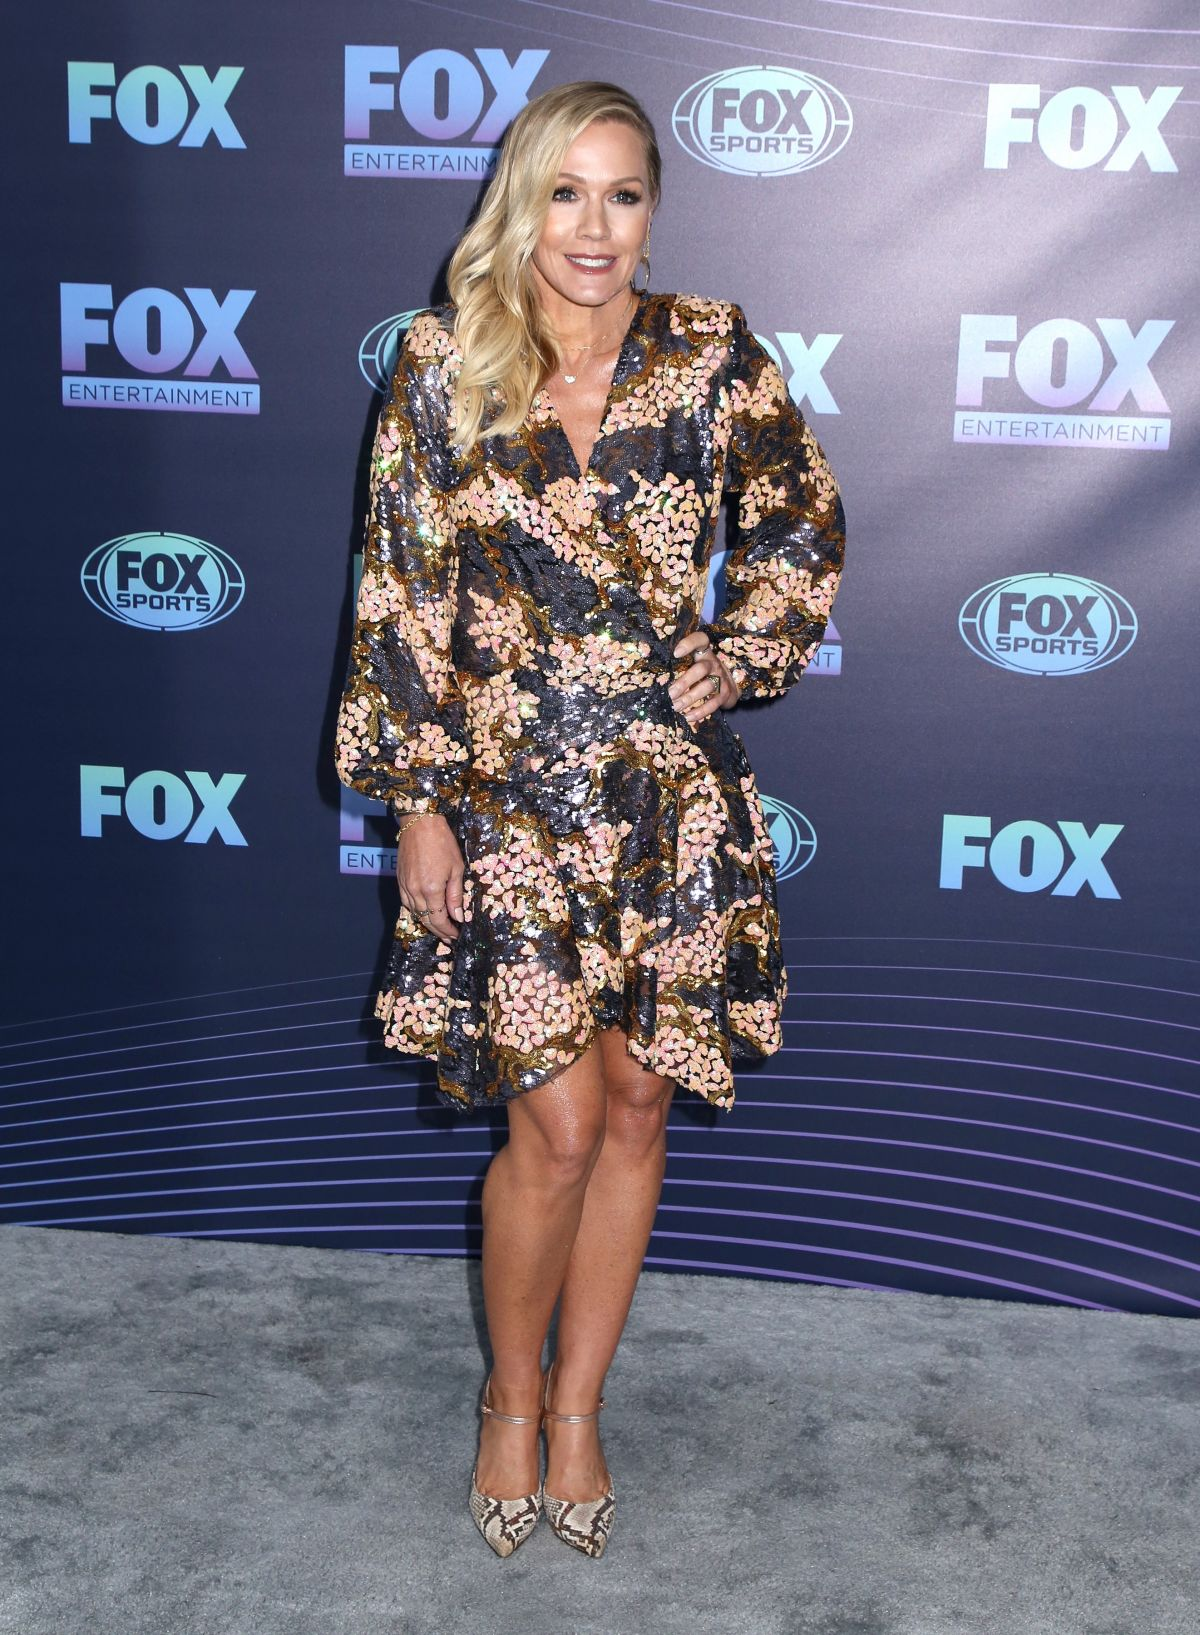 Gambia Articlelarge as well Jennie Garth At Fox Upfront Presentation In New York besides Barret Oliver Now besides Isla Fisher Pretended Flailing Water Scene moreover . on mercedes official site